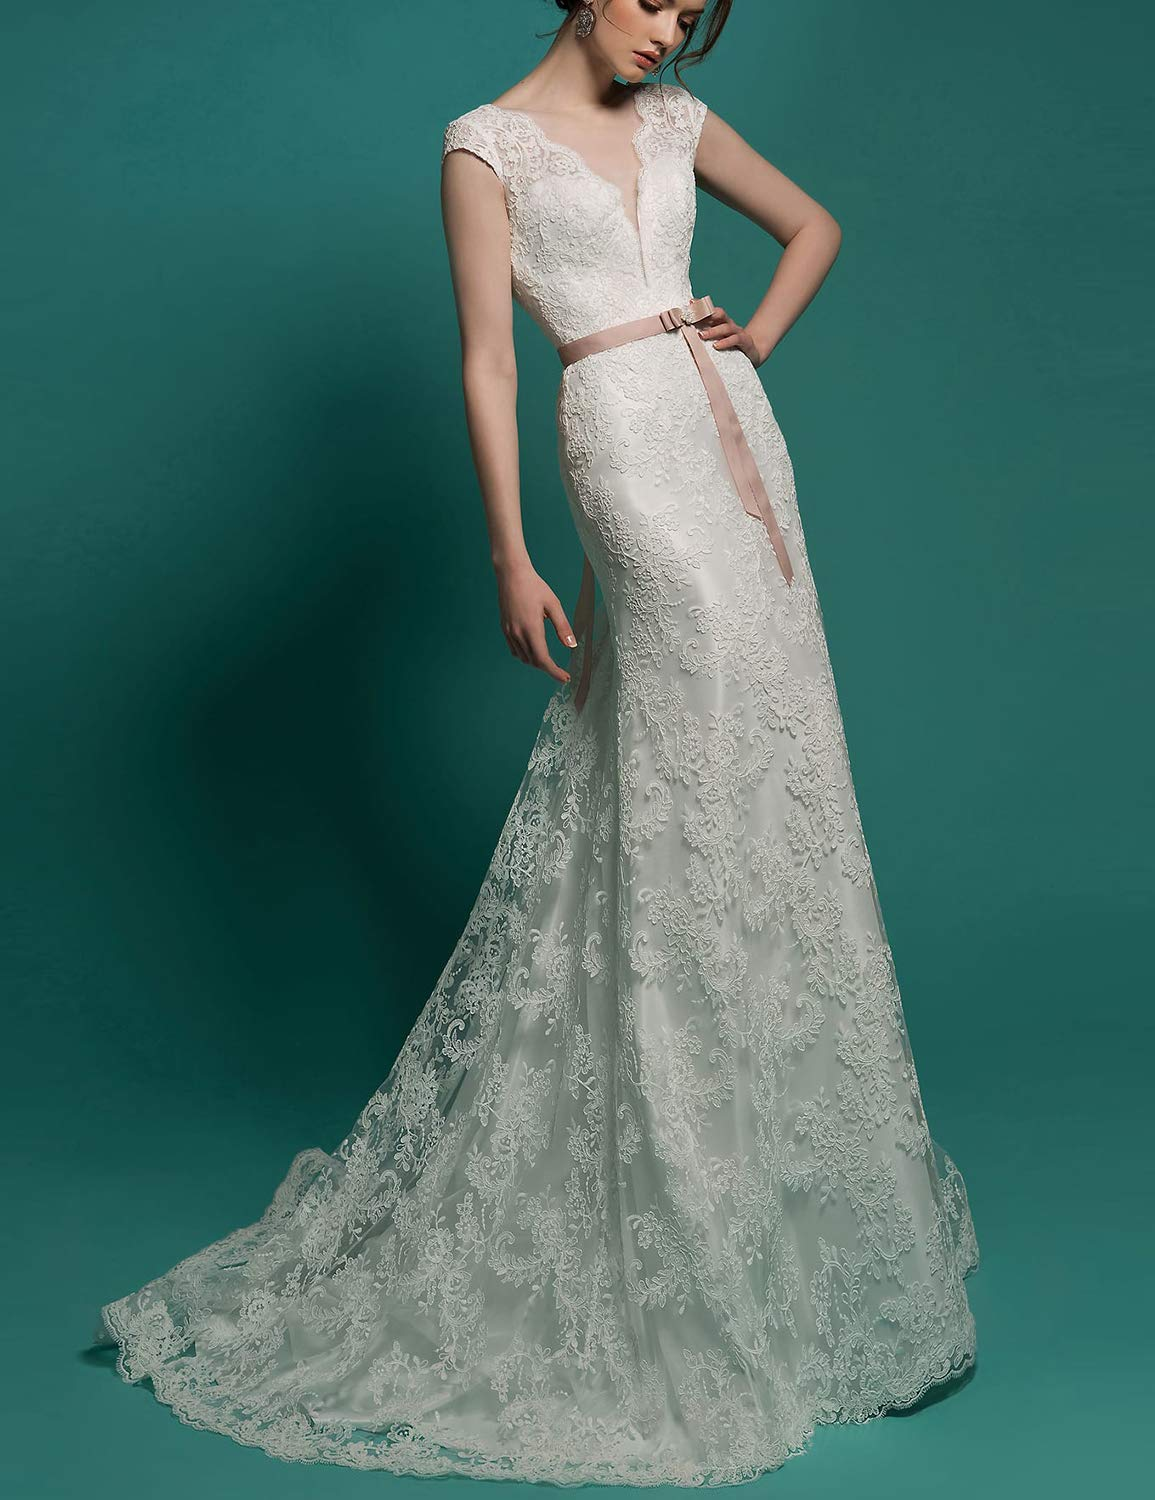 Long Plus Size Wedding Dresses for Women Lace Appliqued Evening Dress 2019  Empire Waist Formal Ball Gown Bridal Gown with Cap Sleeves V Neck Party ...